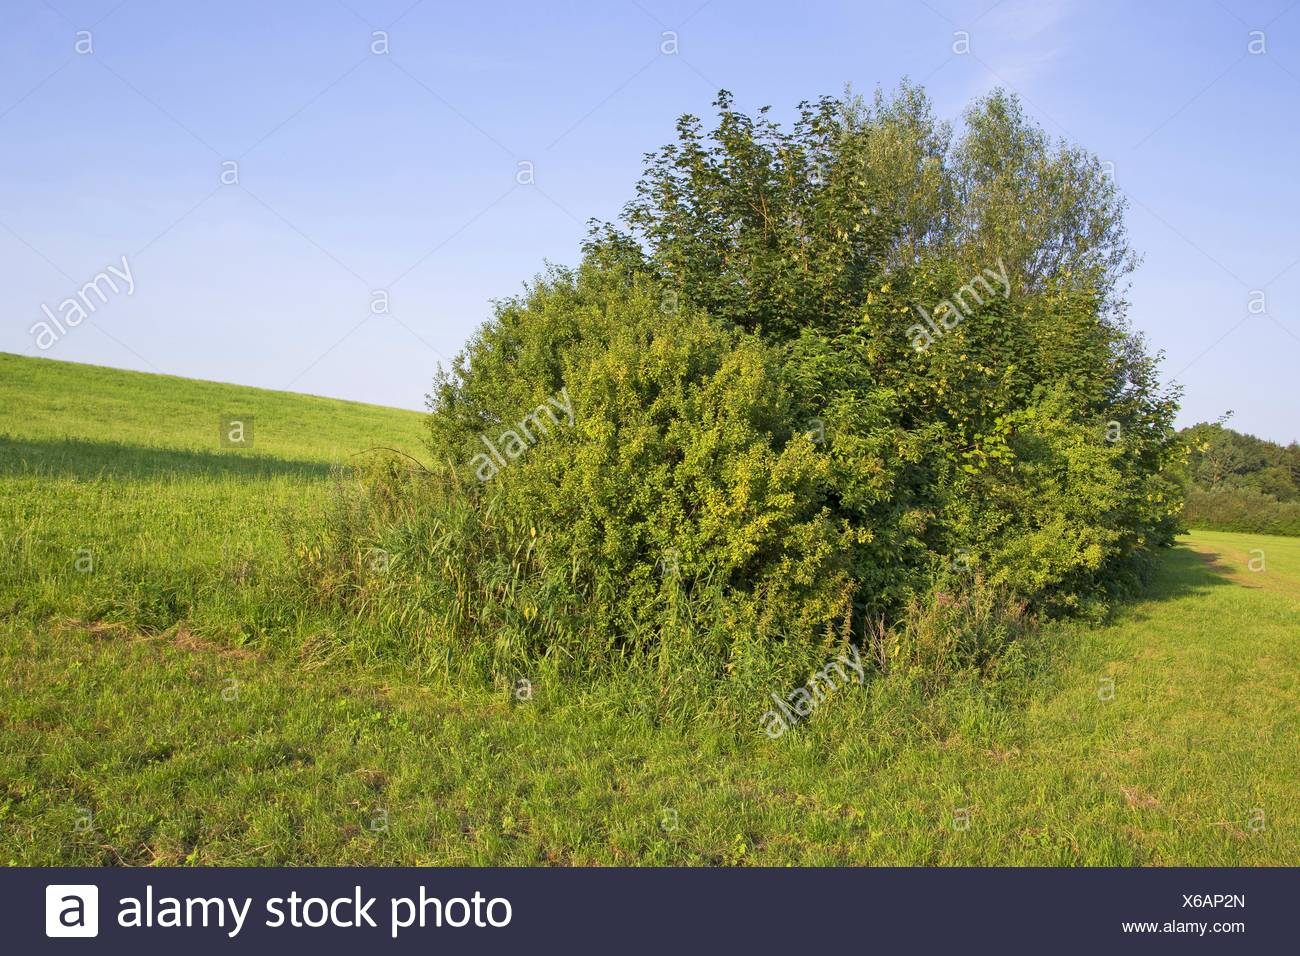 pasture with shrubs, Germany, Schleswig-Holstein - Stock Image